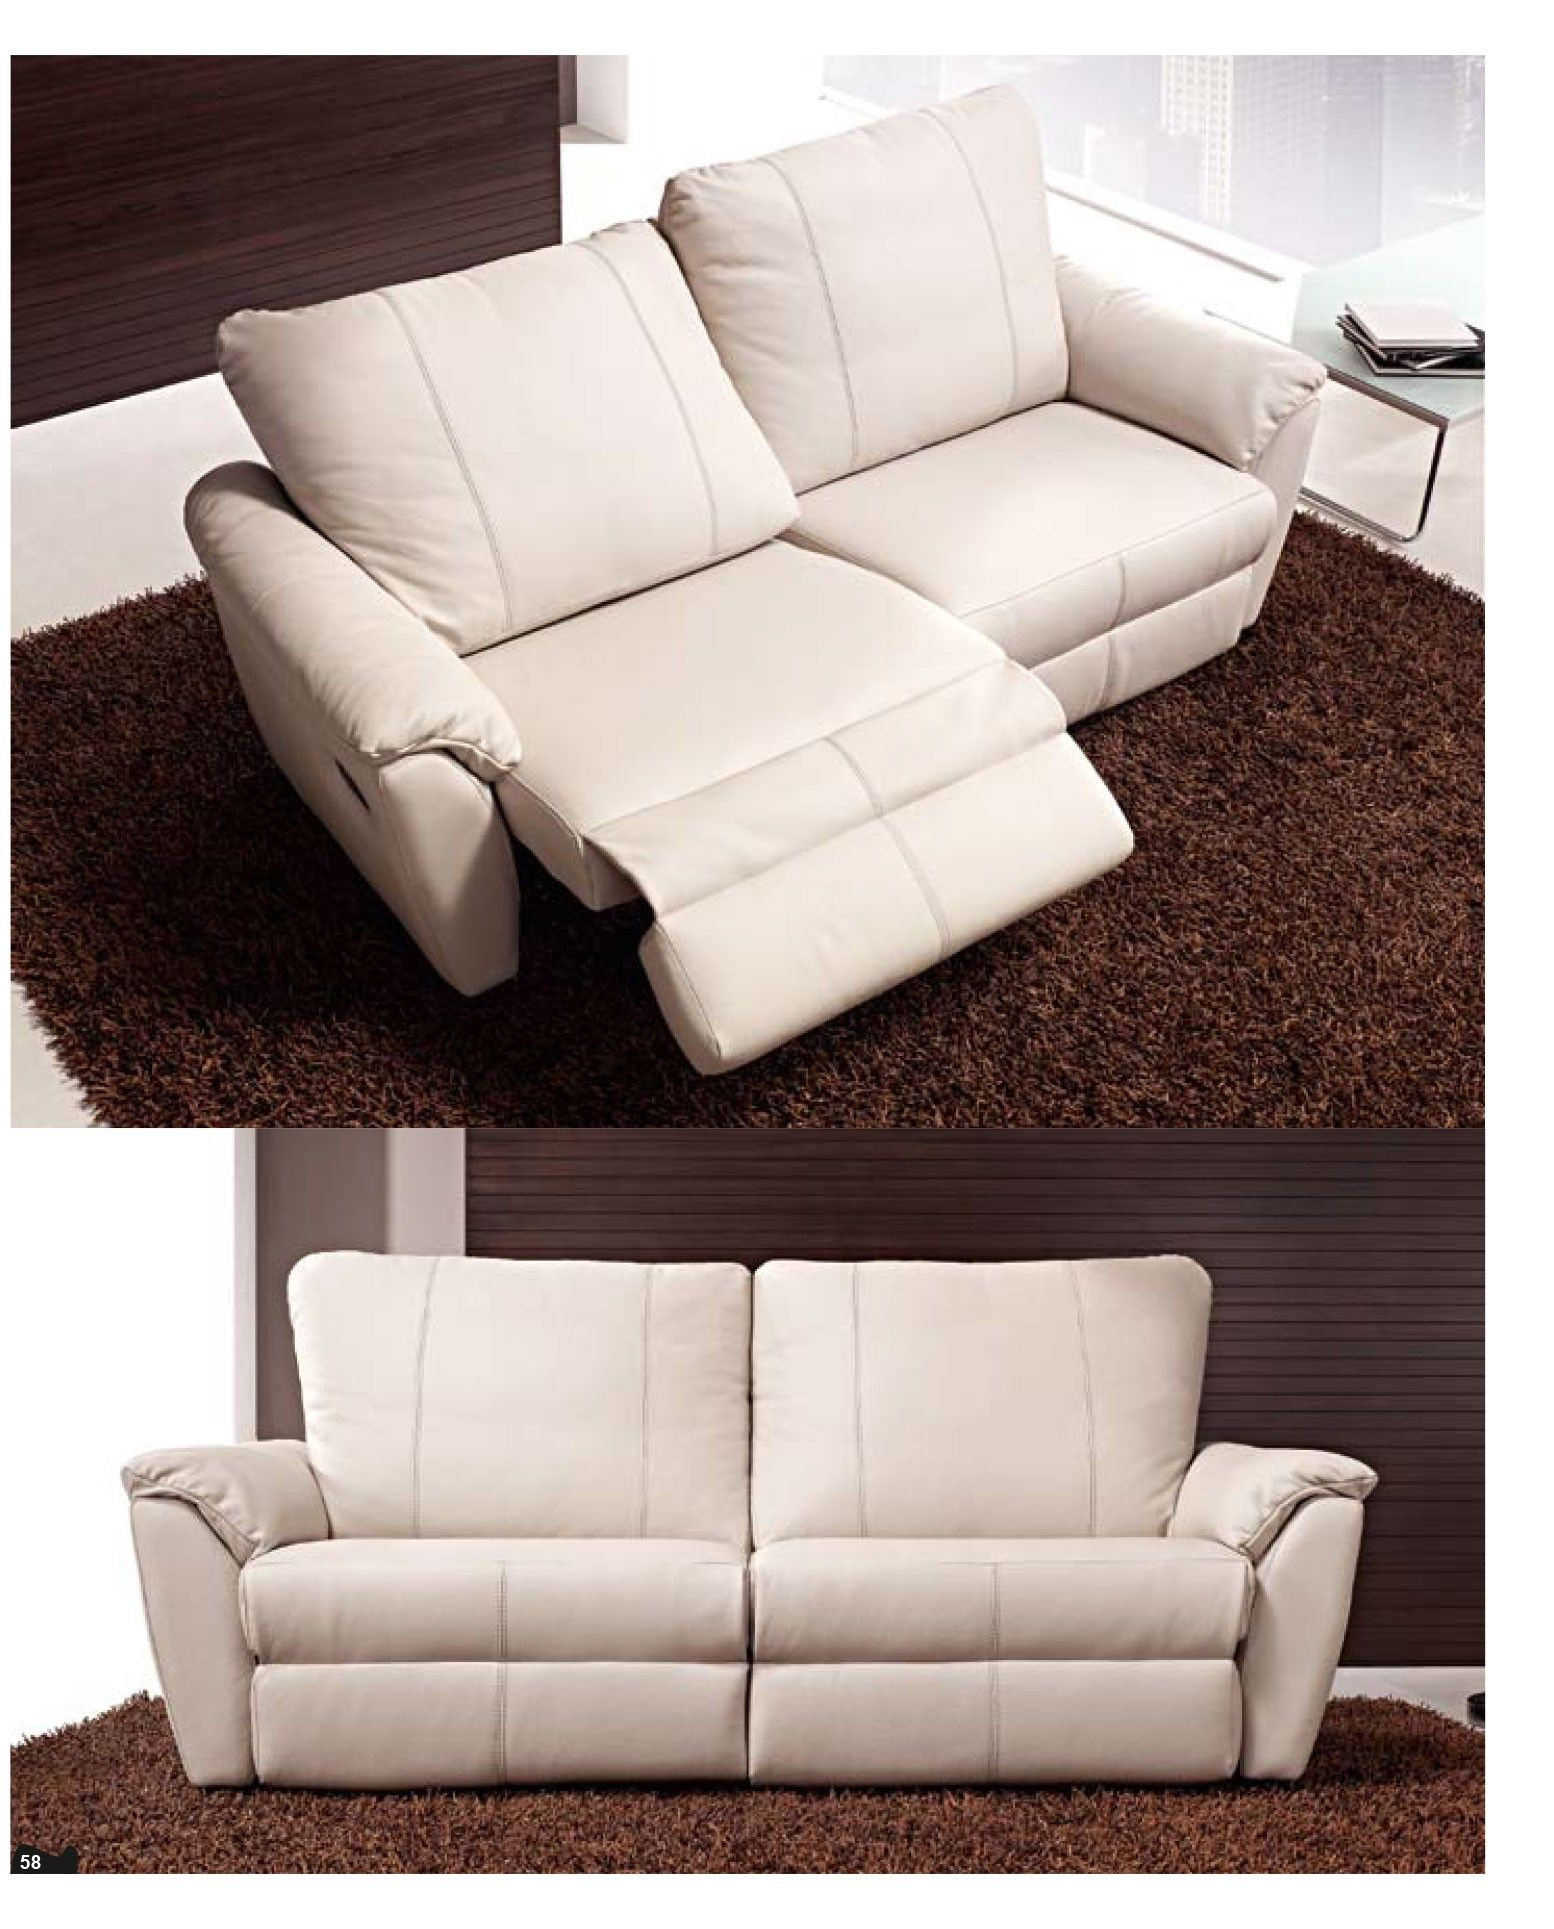 Modern Reclining Loveseat in ivory color touch with dark brown furry rug  viewing gallery